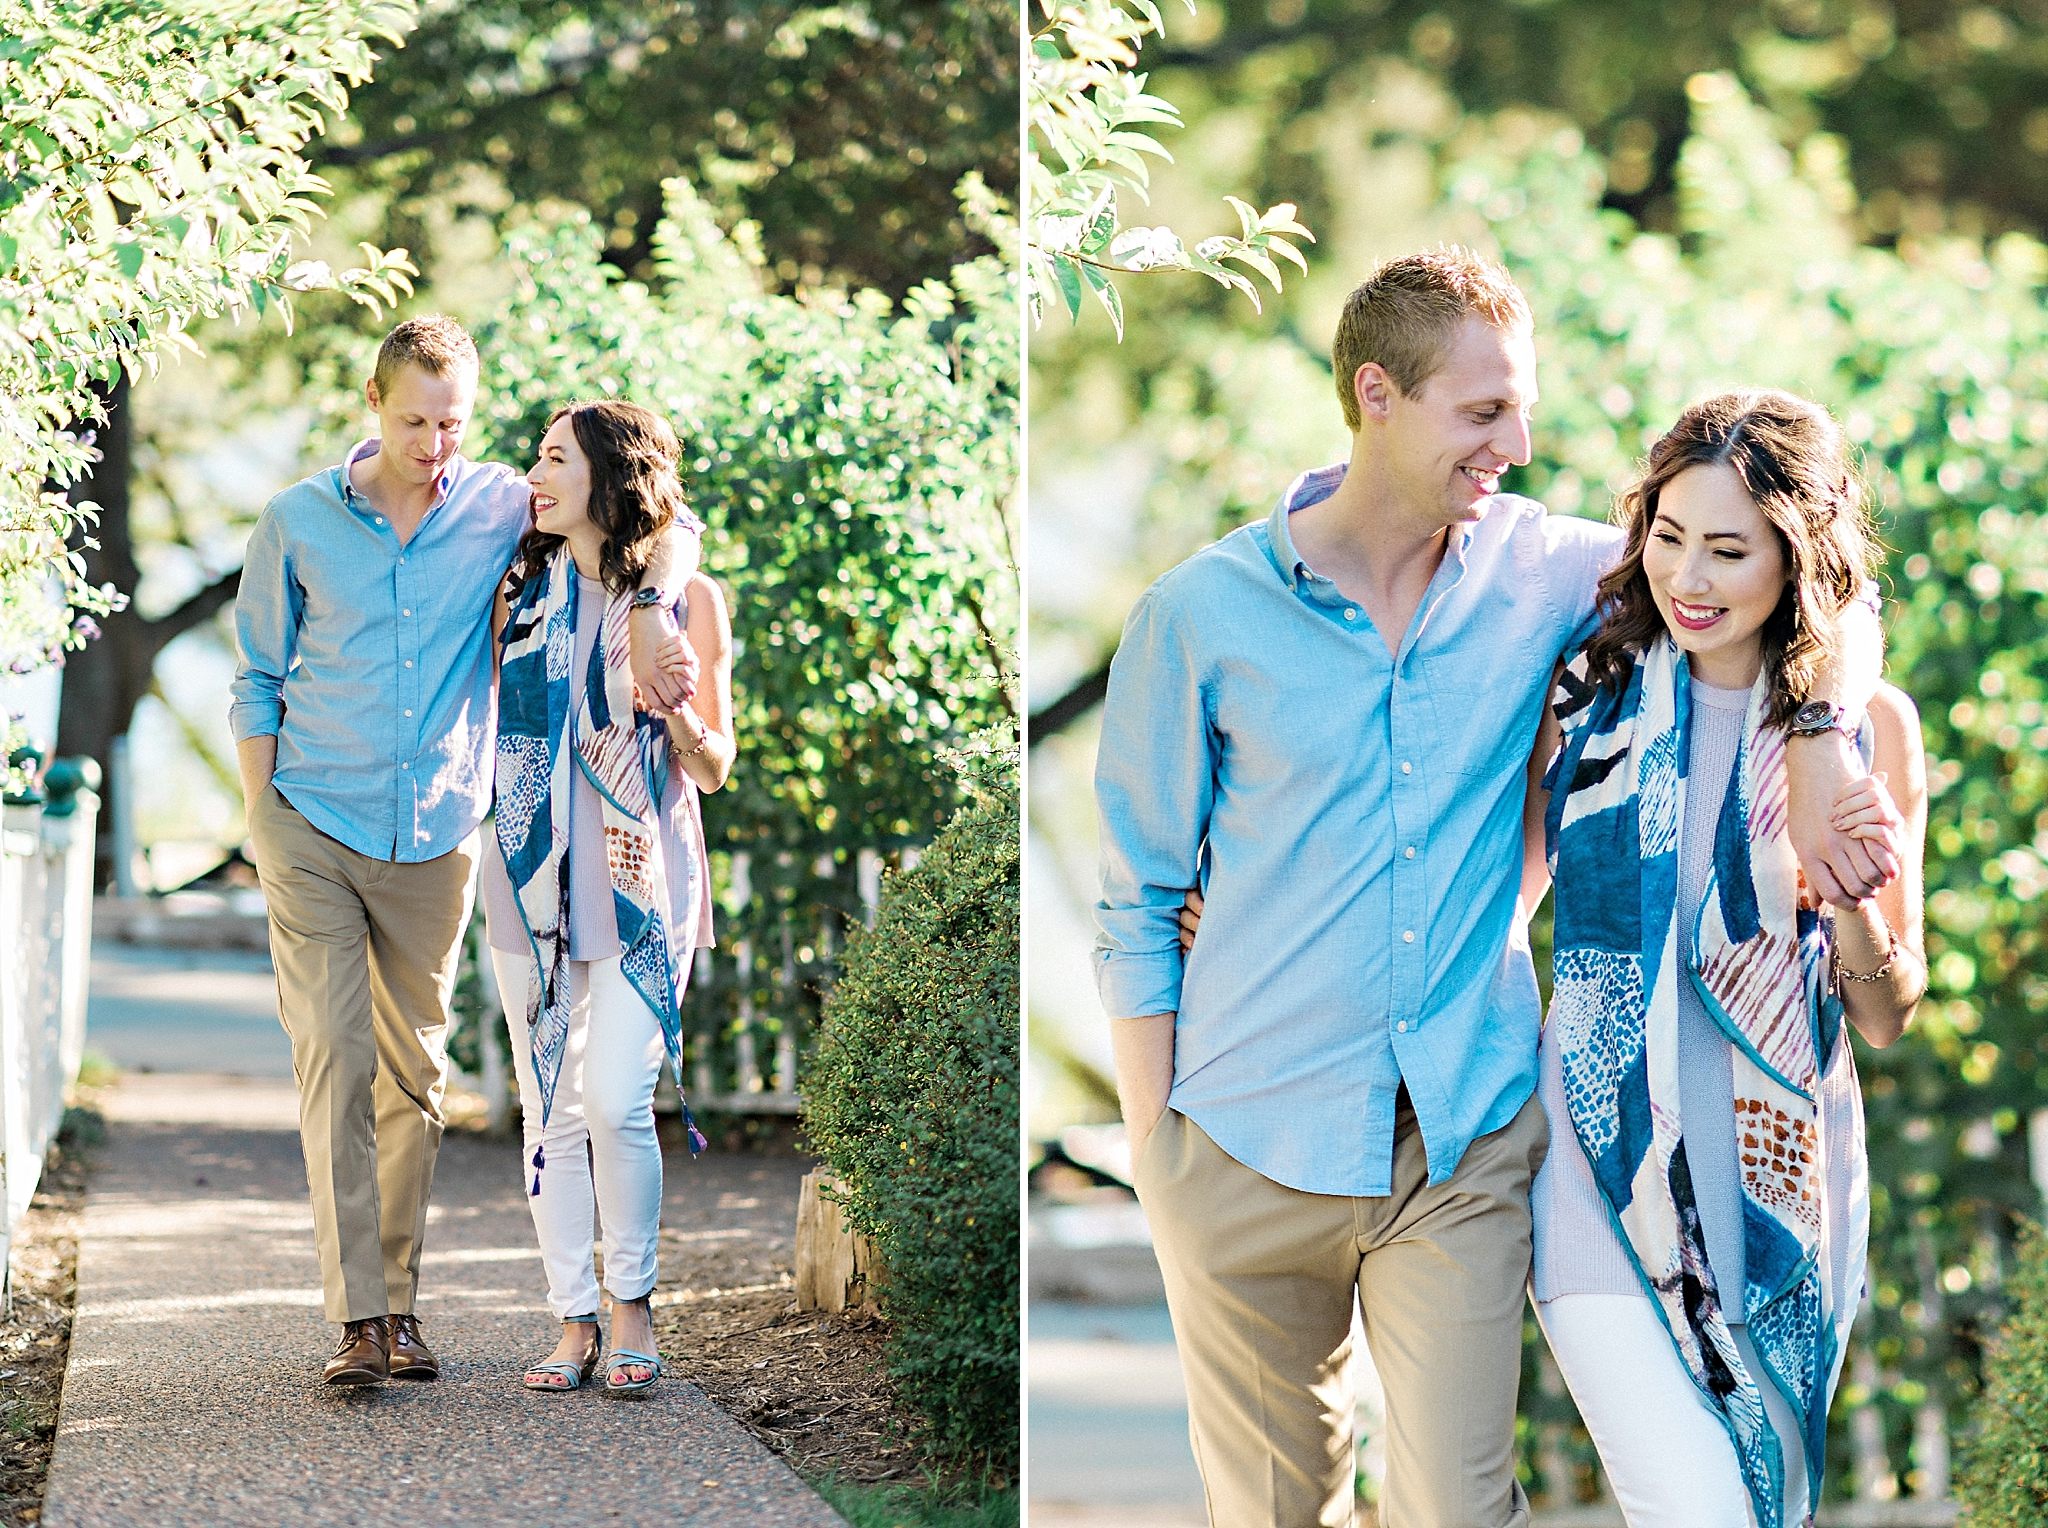 Romantic Seaside Beach Engagement Shoot in Lulu's long flowy maxy dress_009.jpg